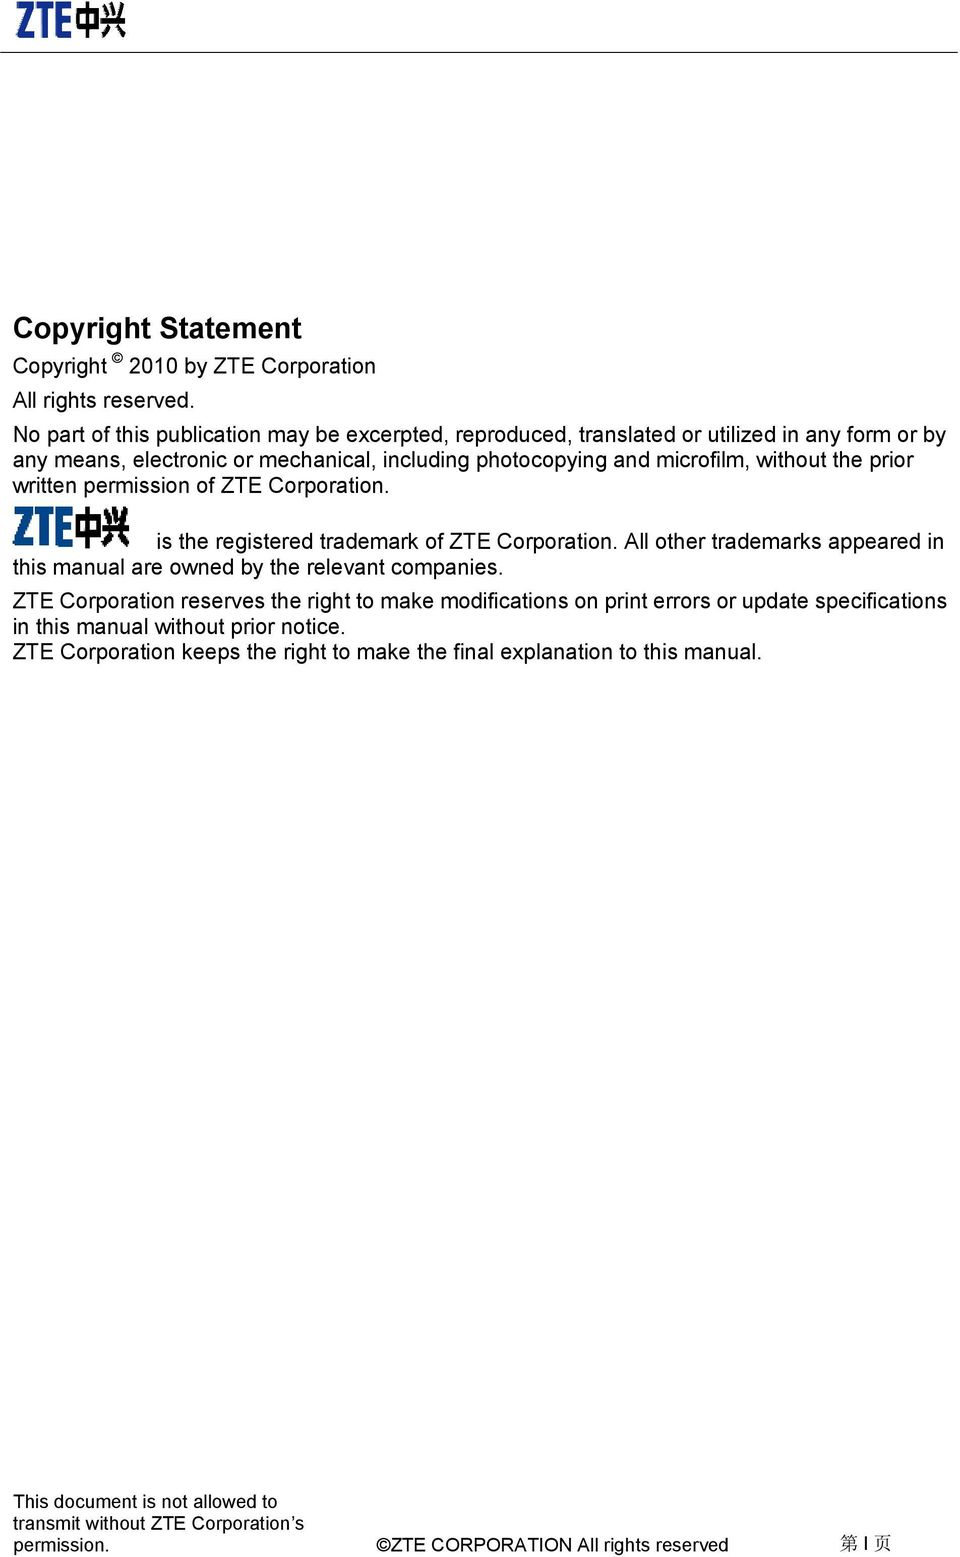 the prior written permission of ZTE Corporation. is the registered trademark of ZTE Corporation. All other trademarks appeared in this manual are owned by the relevant companies.